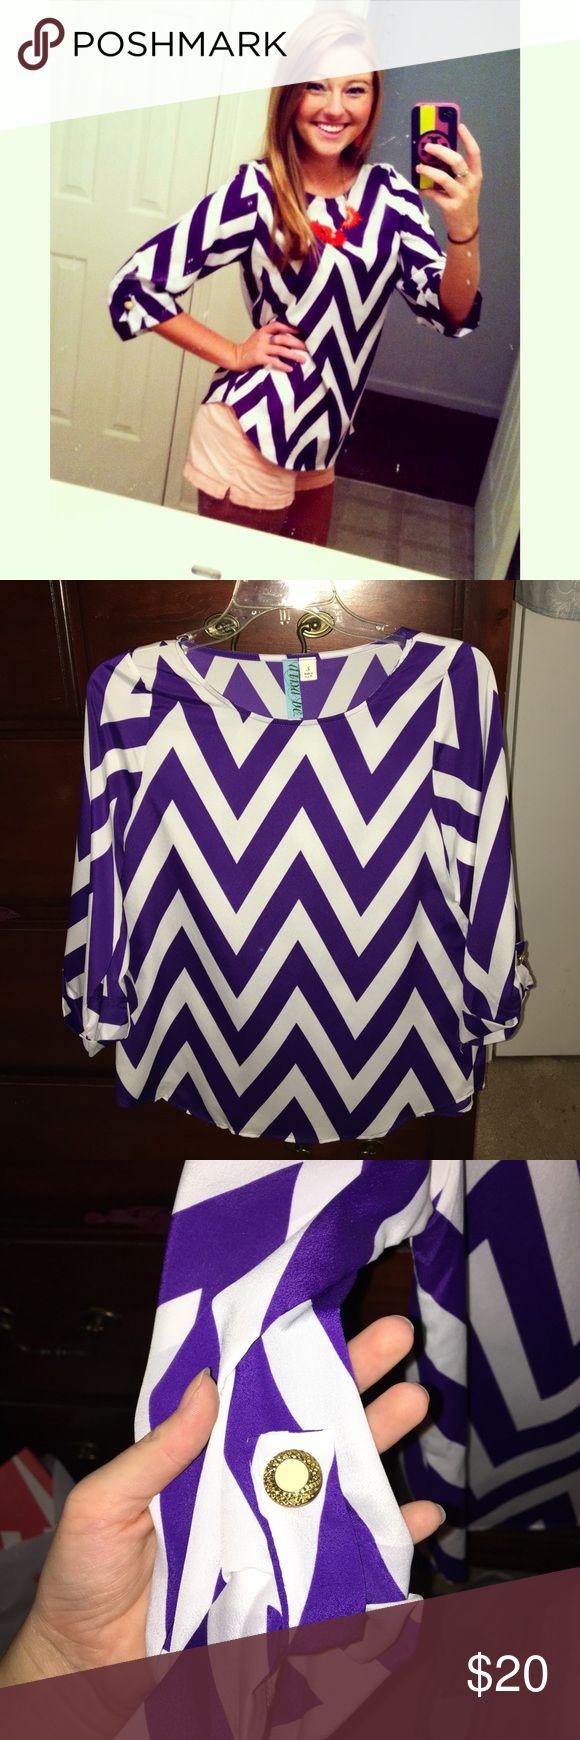 Purple chevron blouse 💜 Worn with the salmon colored shorts I am selling to a Clemson game and got A LOT of compliments! Very cool material and not hot at all. Super comfortable and cute Francesca's Collections Tops Blouses